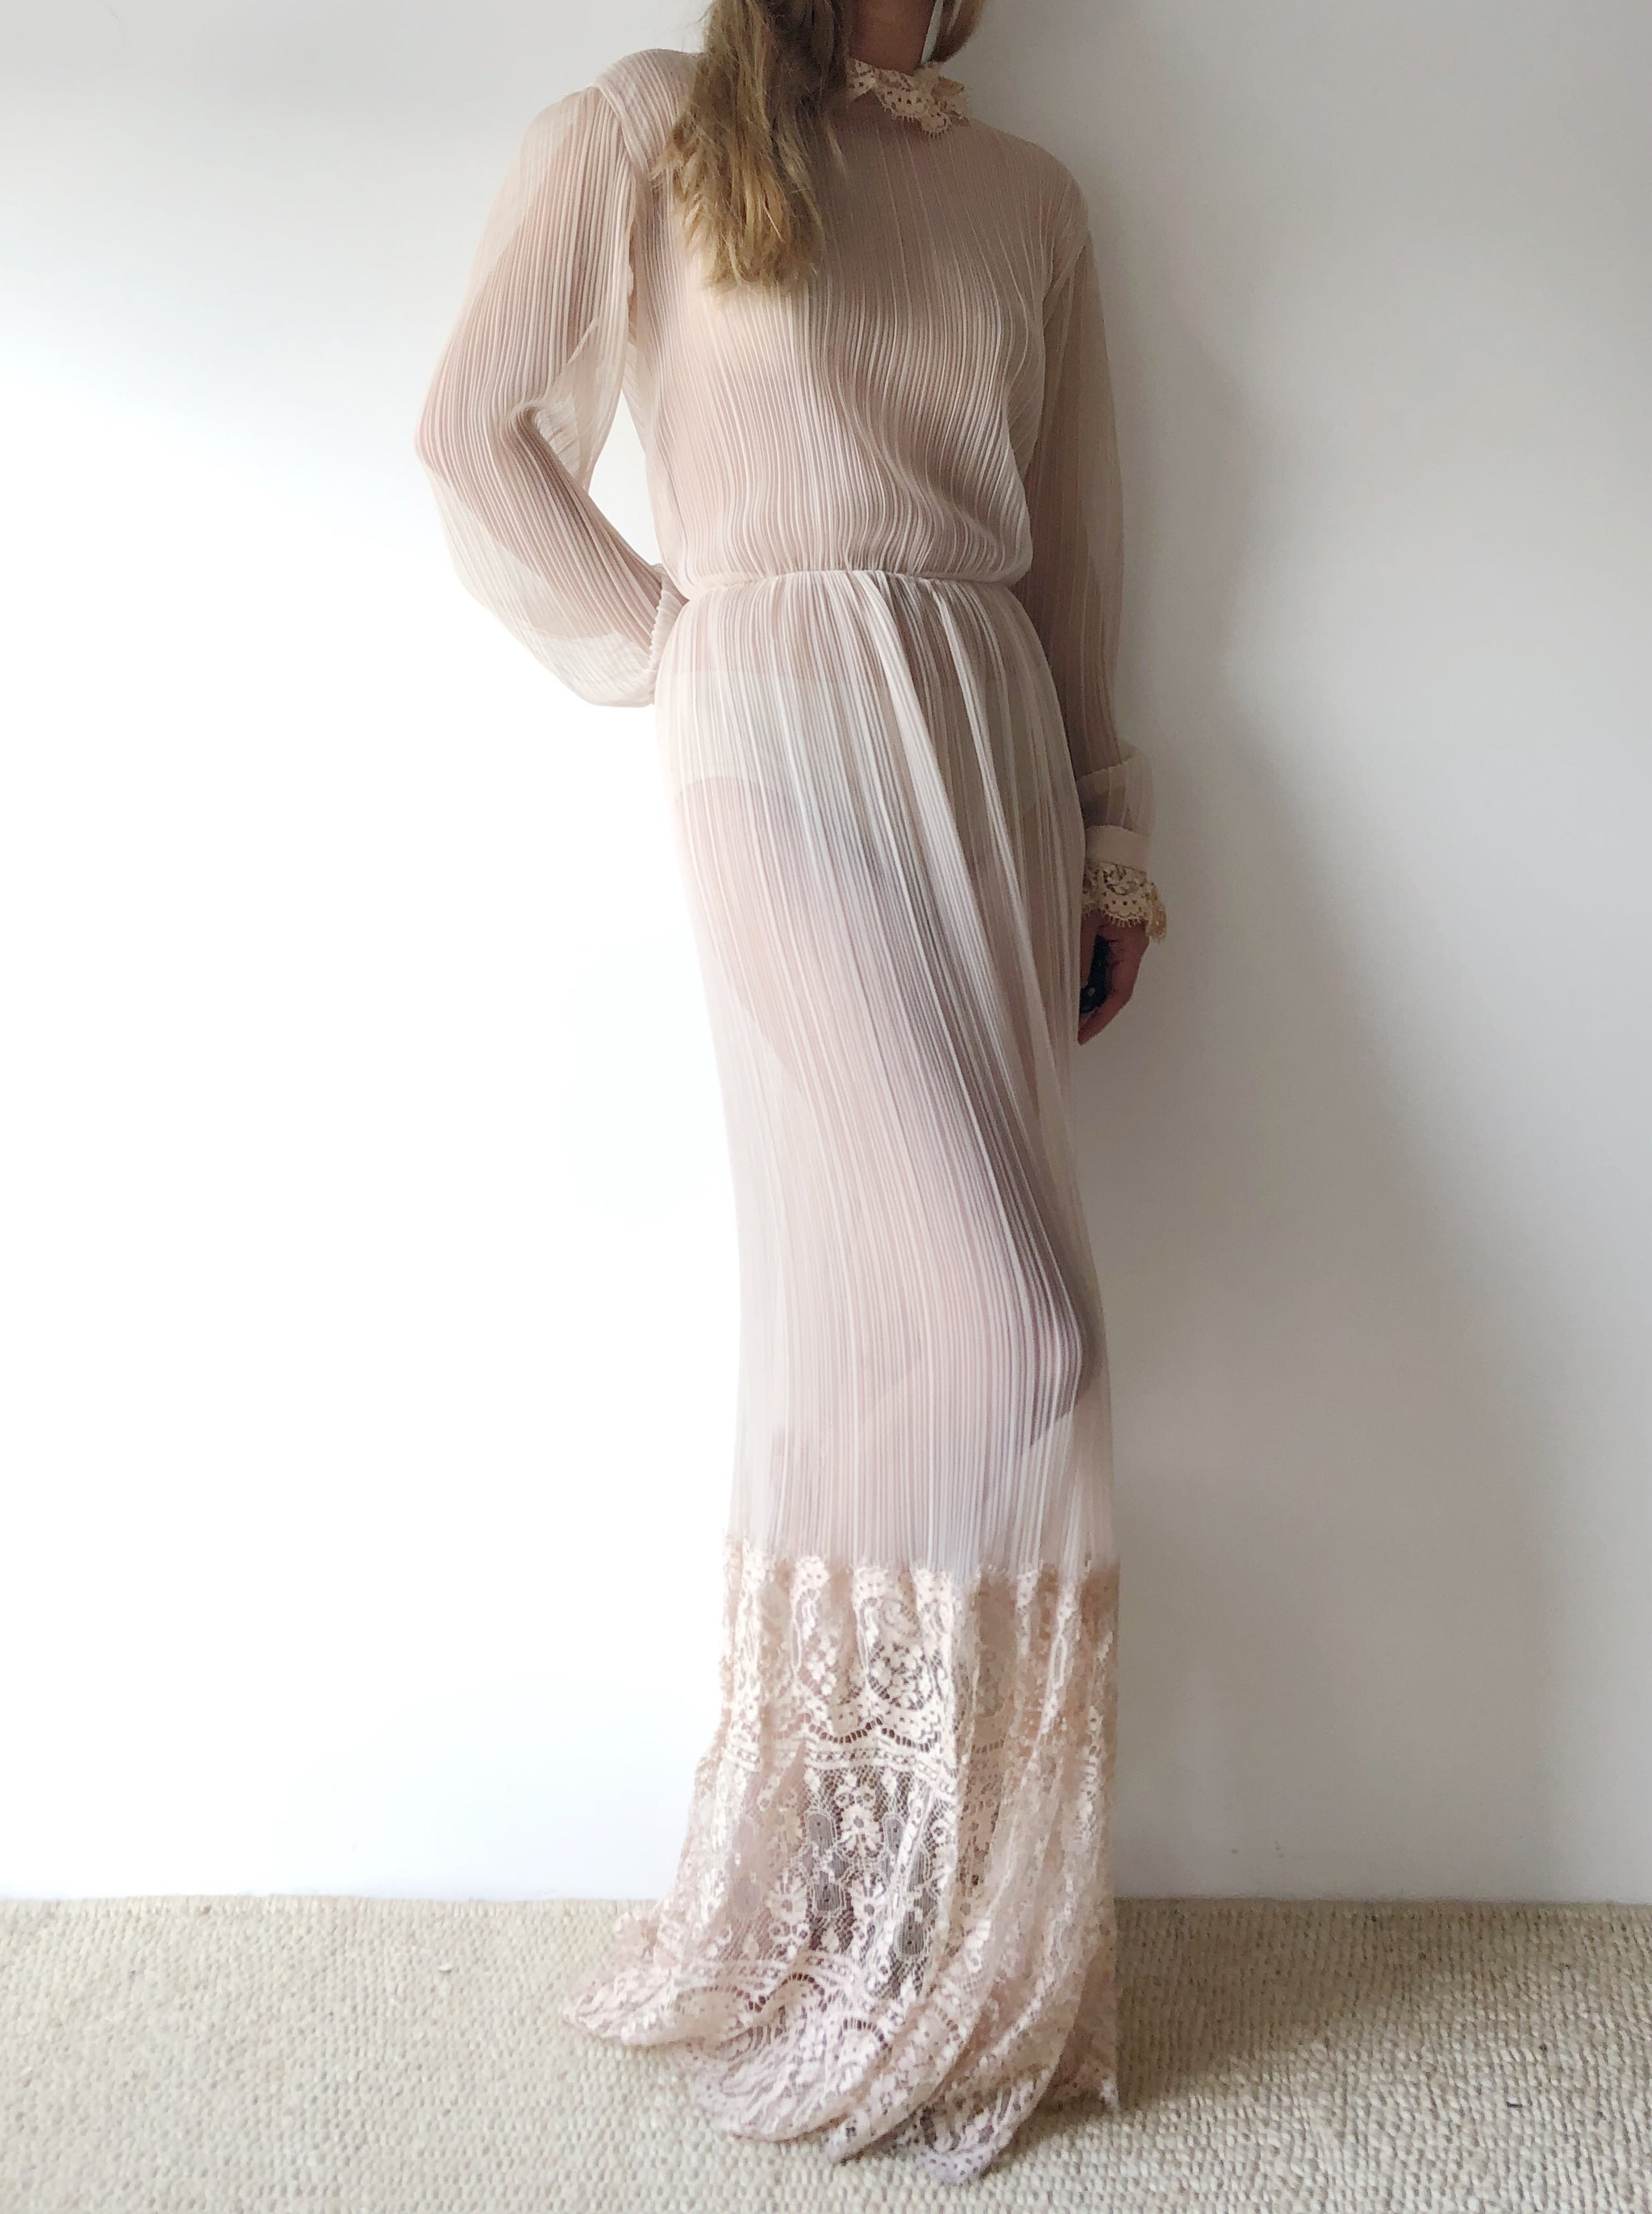 1960s Nude Micropleated Dress - S/M - G O S S A M E R